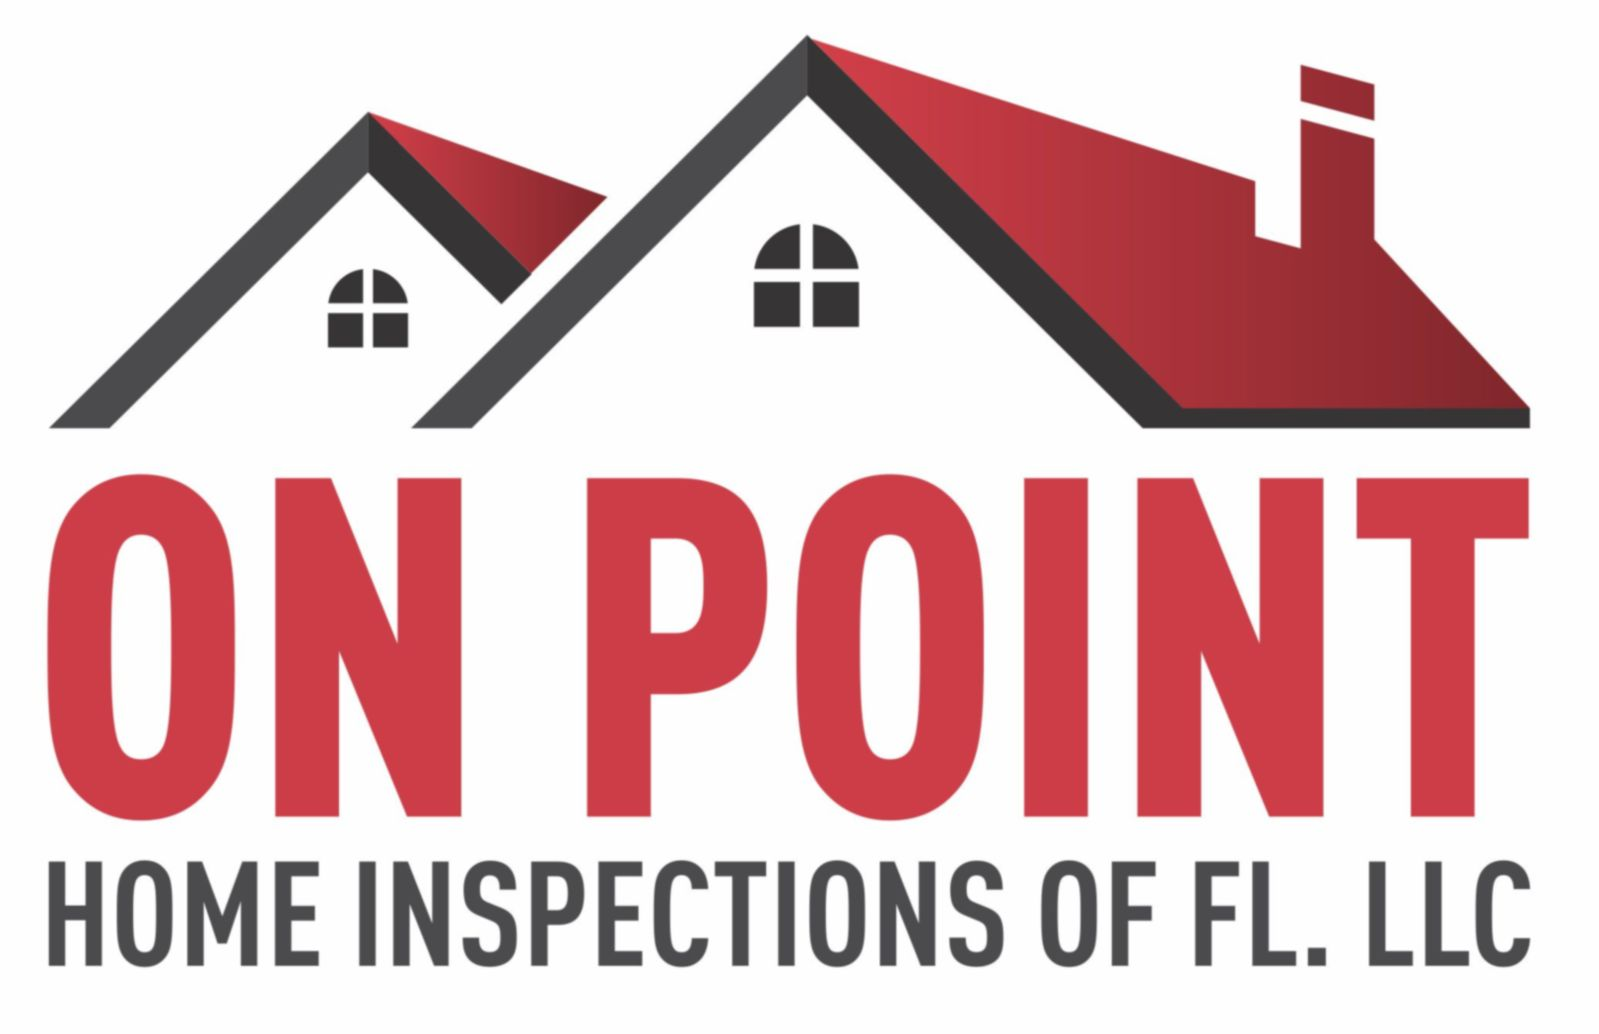 On Point Inspections Florida